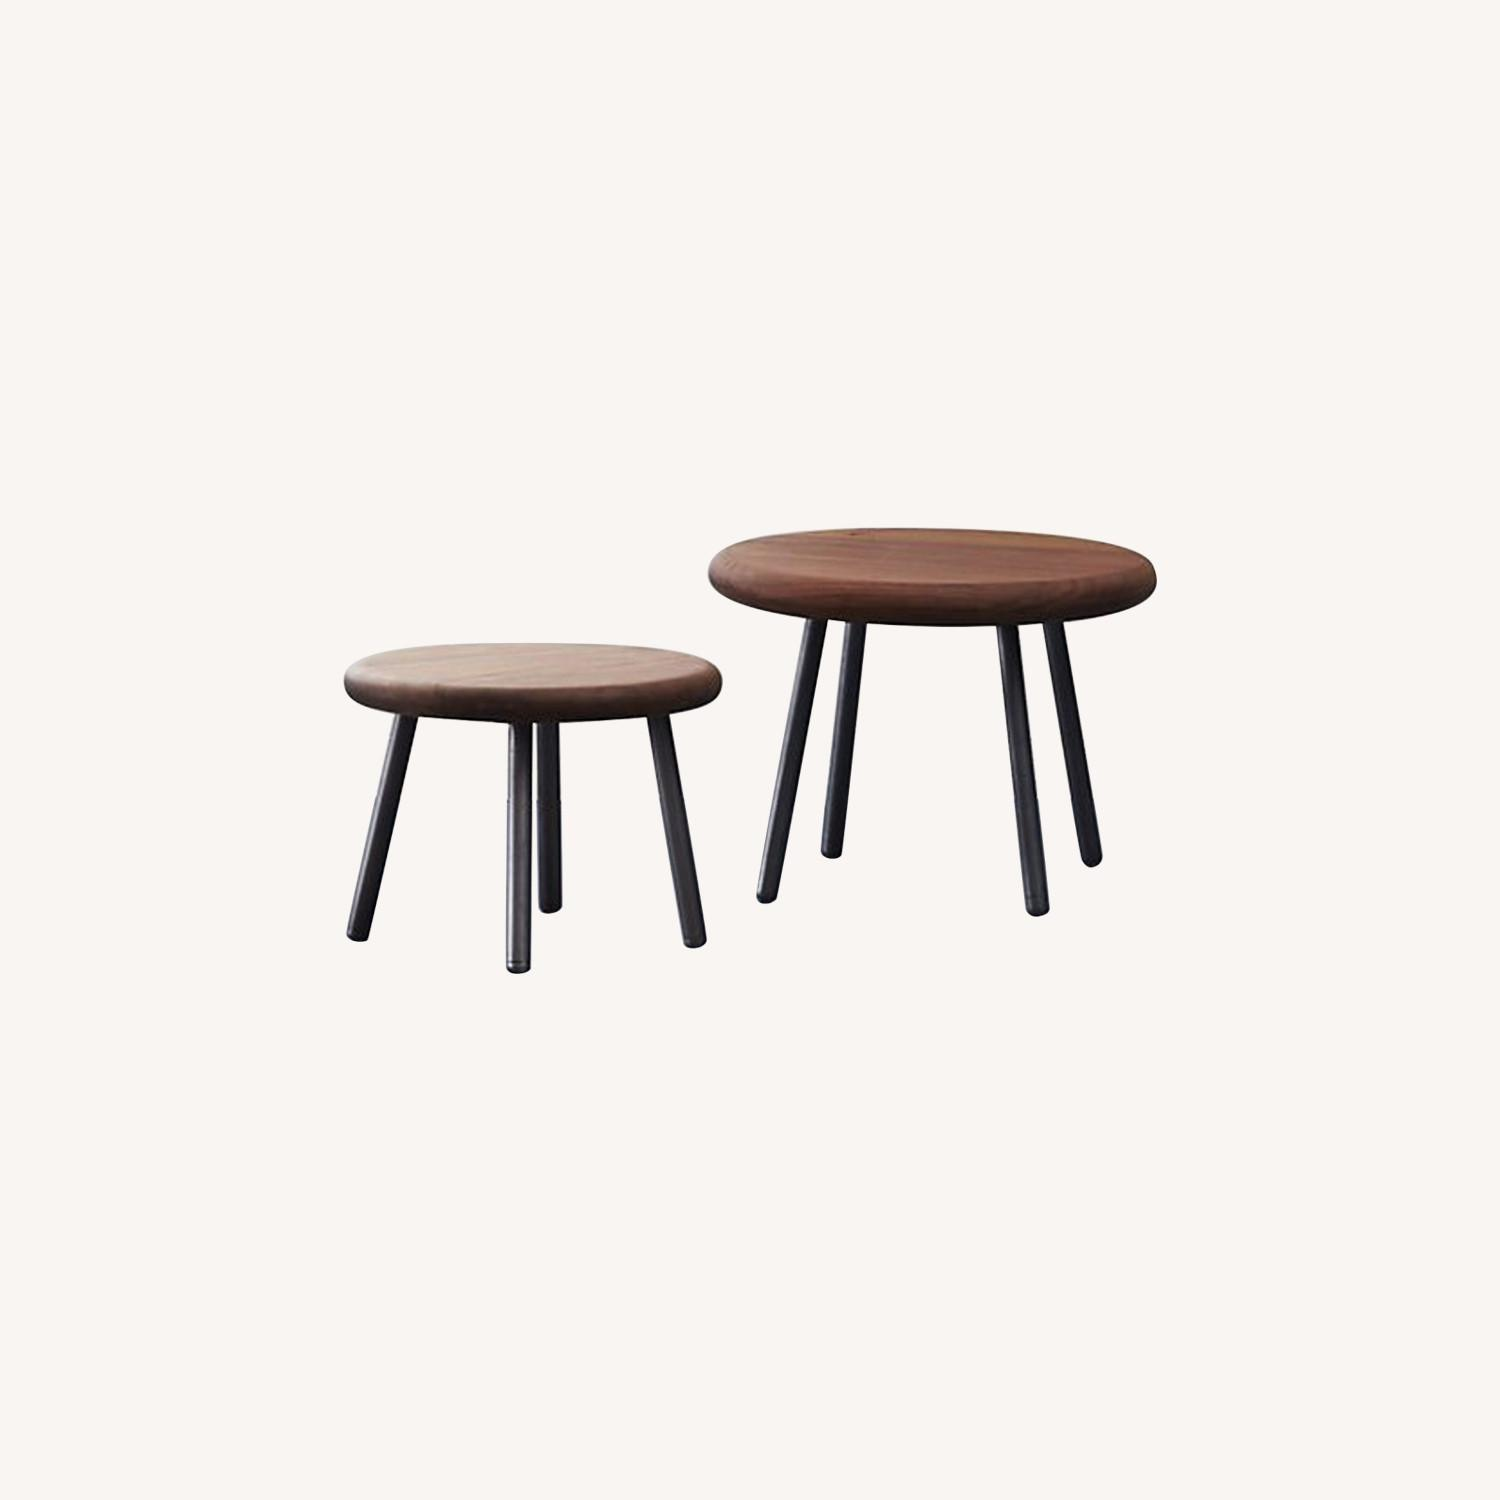 CB2 Wafer 2 Piece Nesting Table Set - image-0